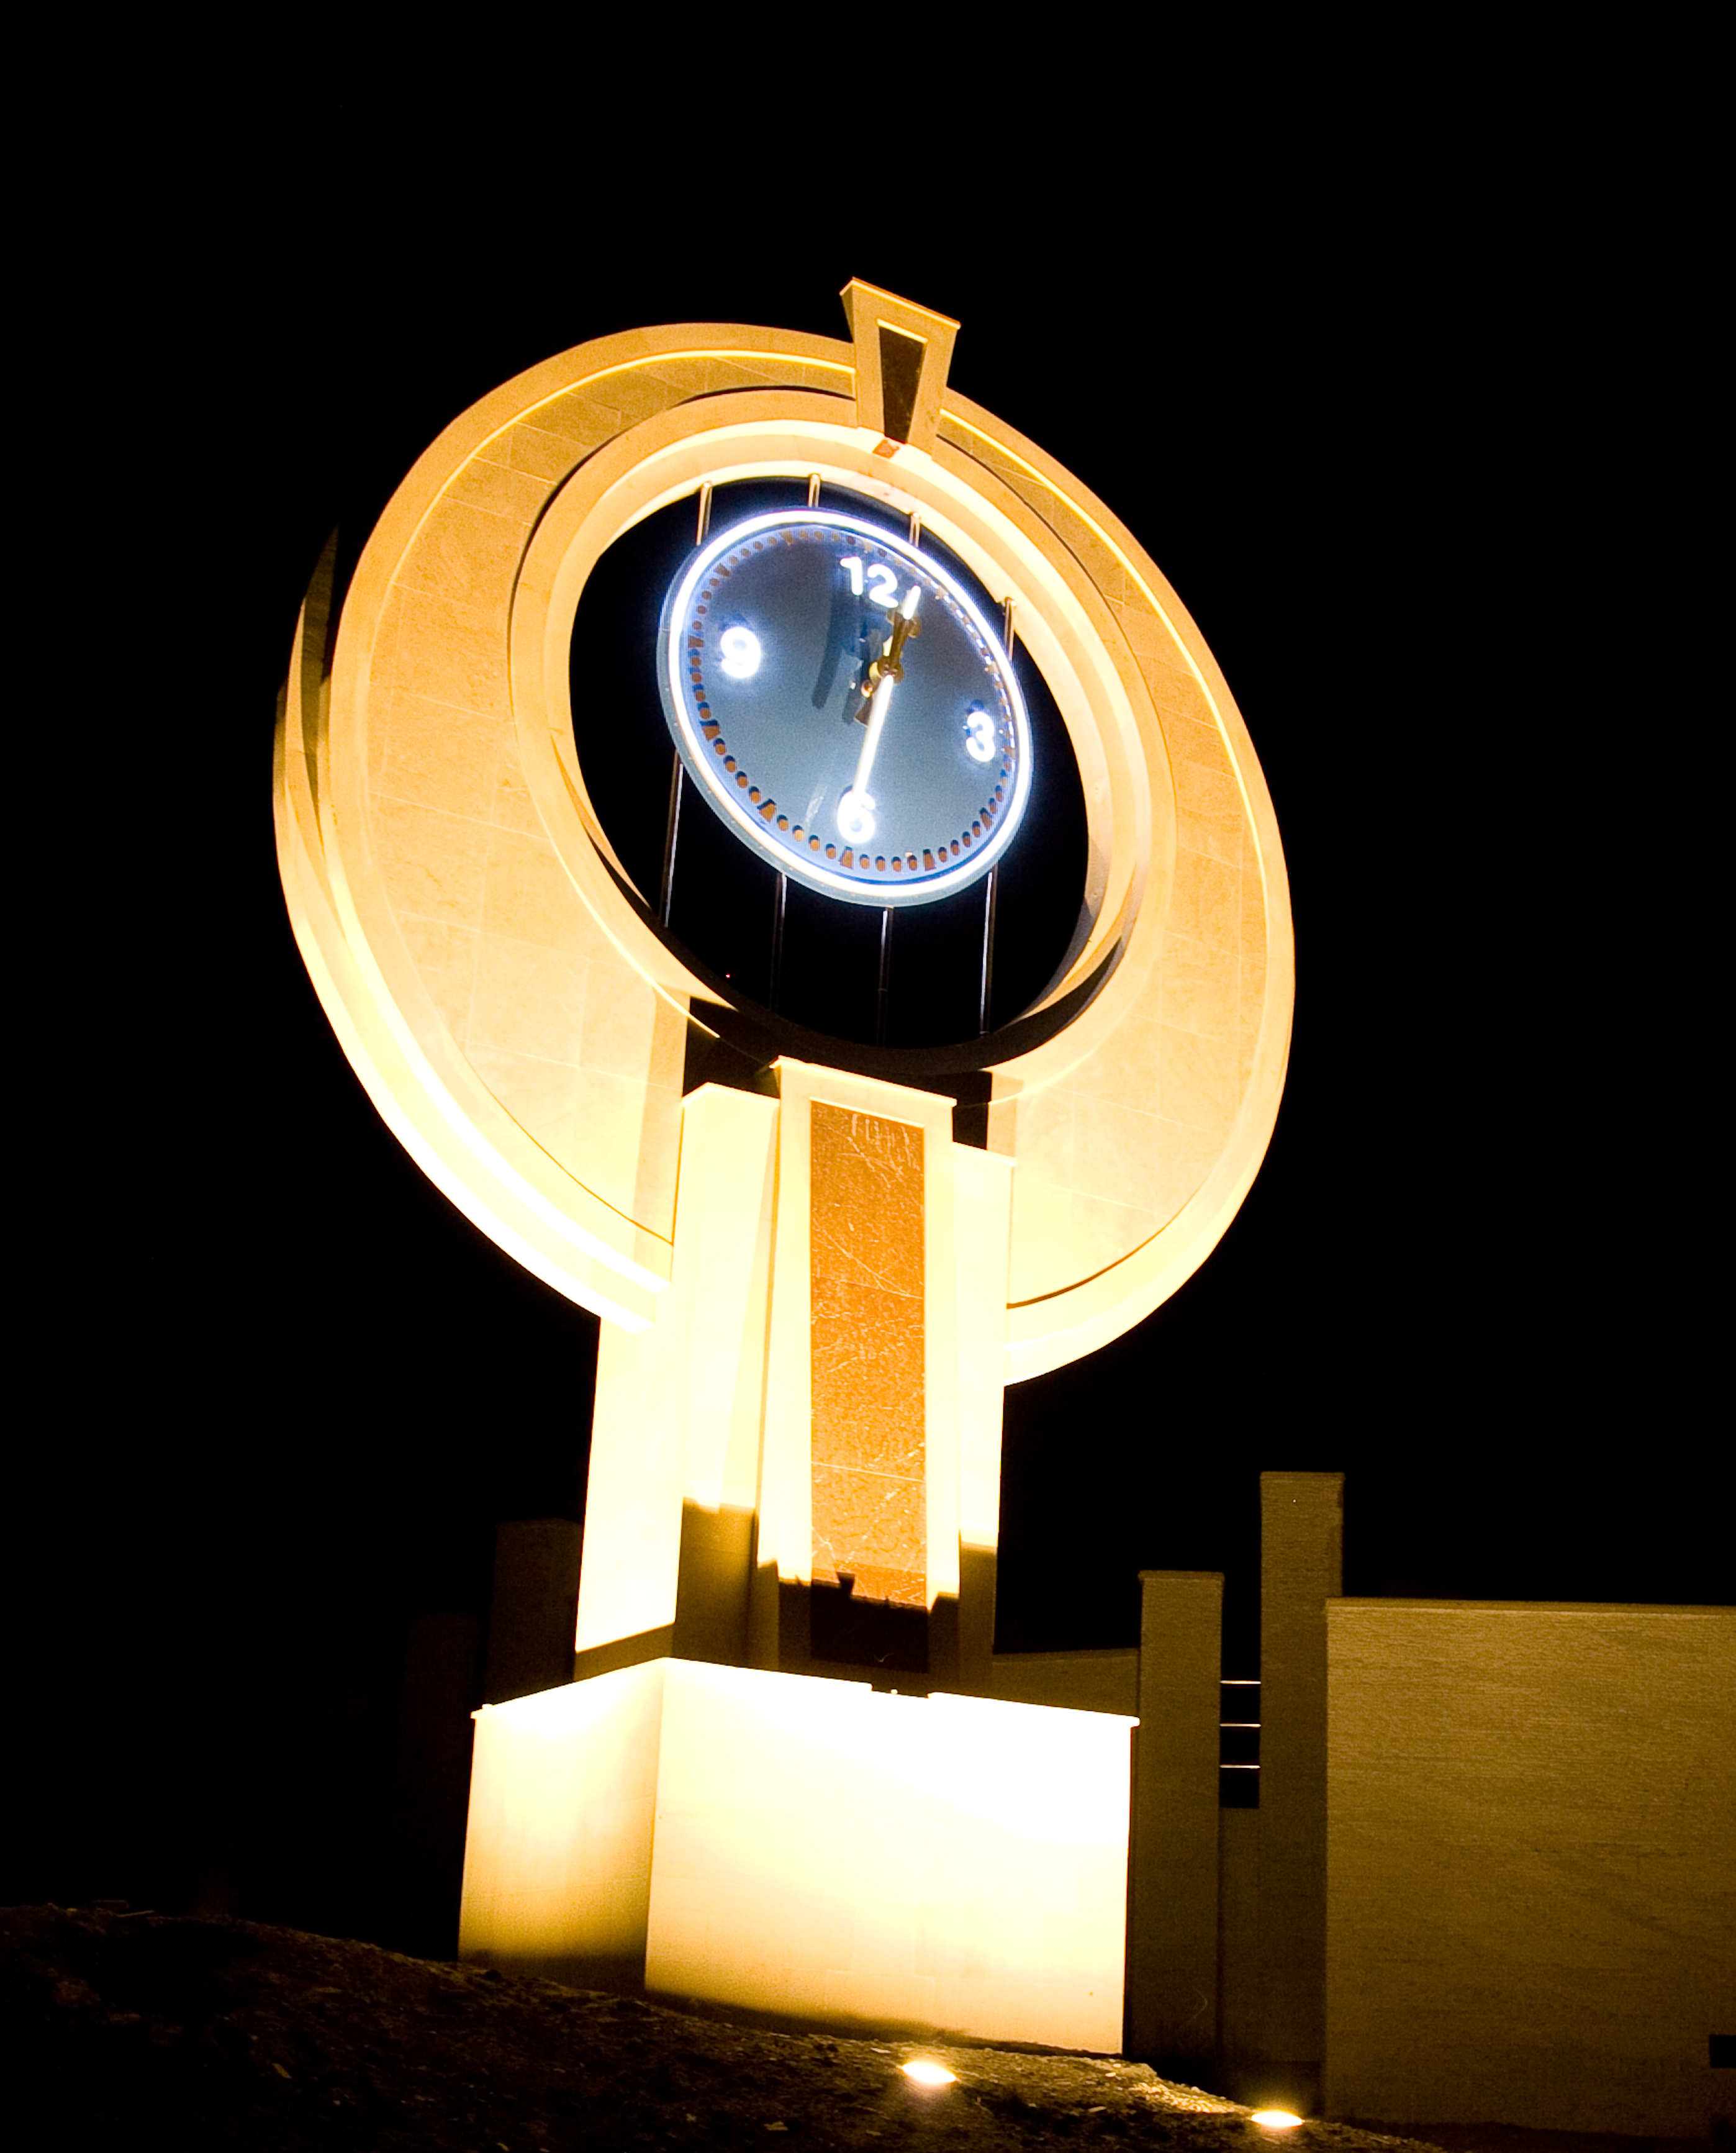 Large exterior clock illuminated